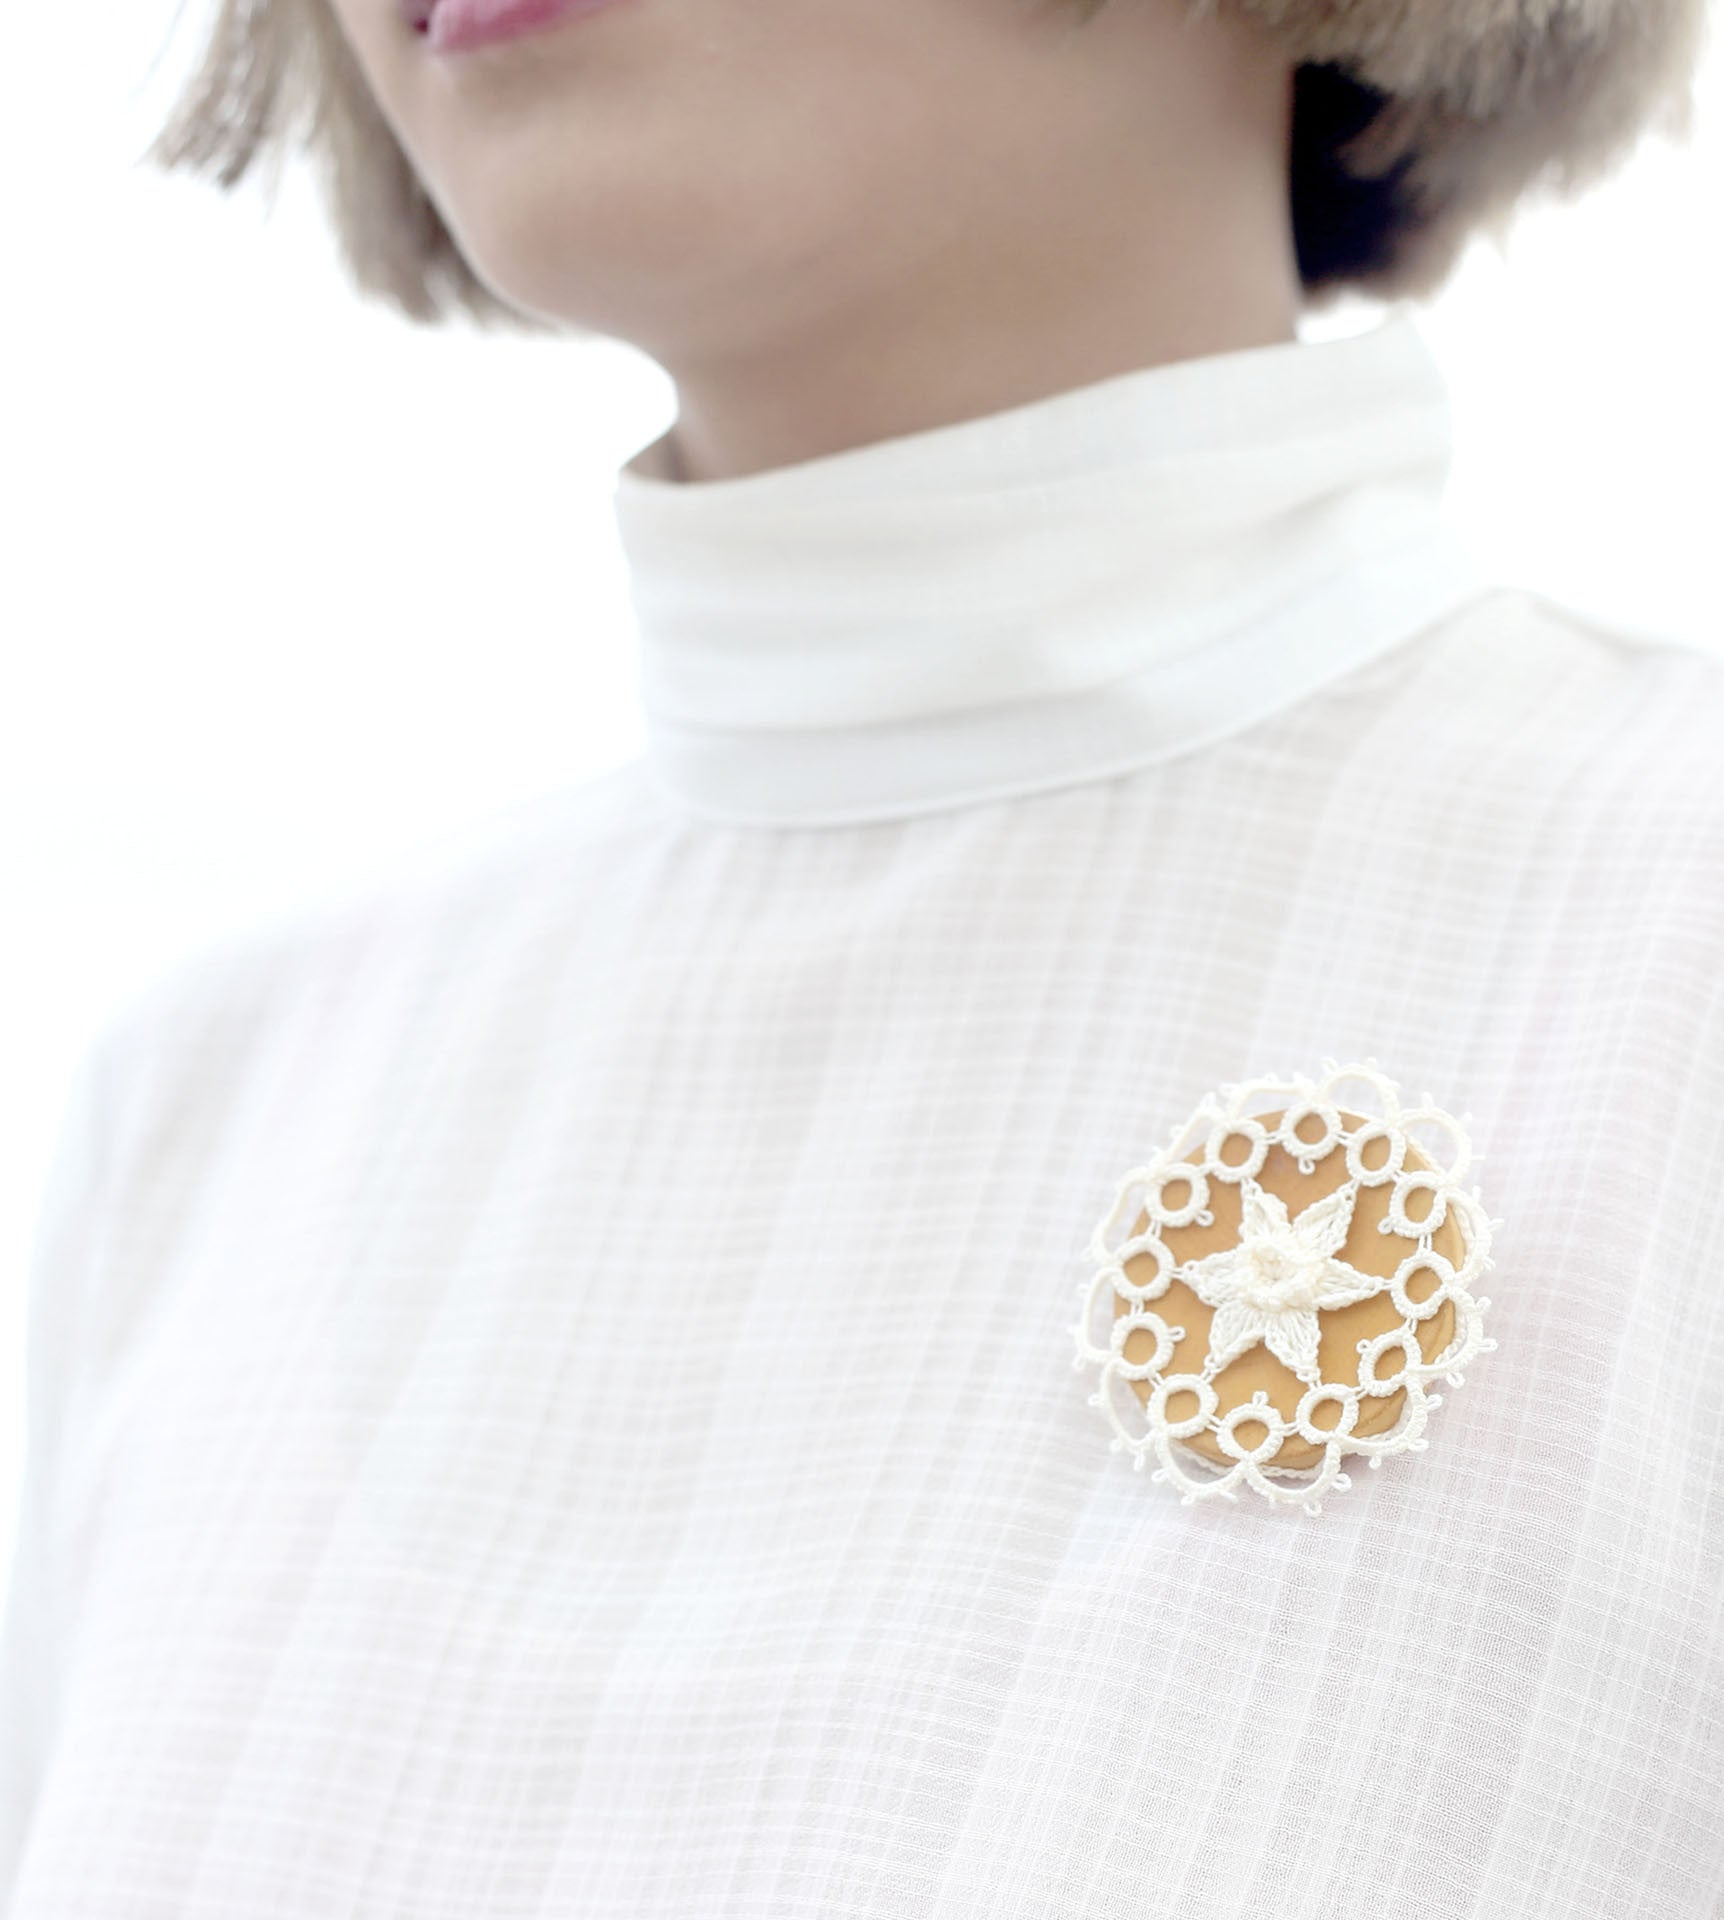 Narcissus, Wooden Button Brooch with Crochet